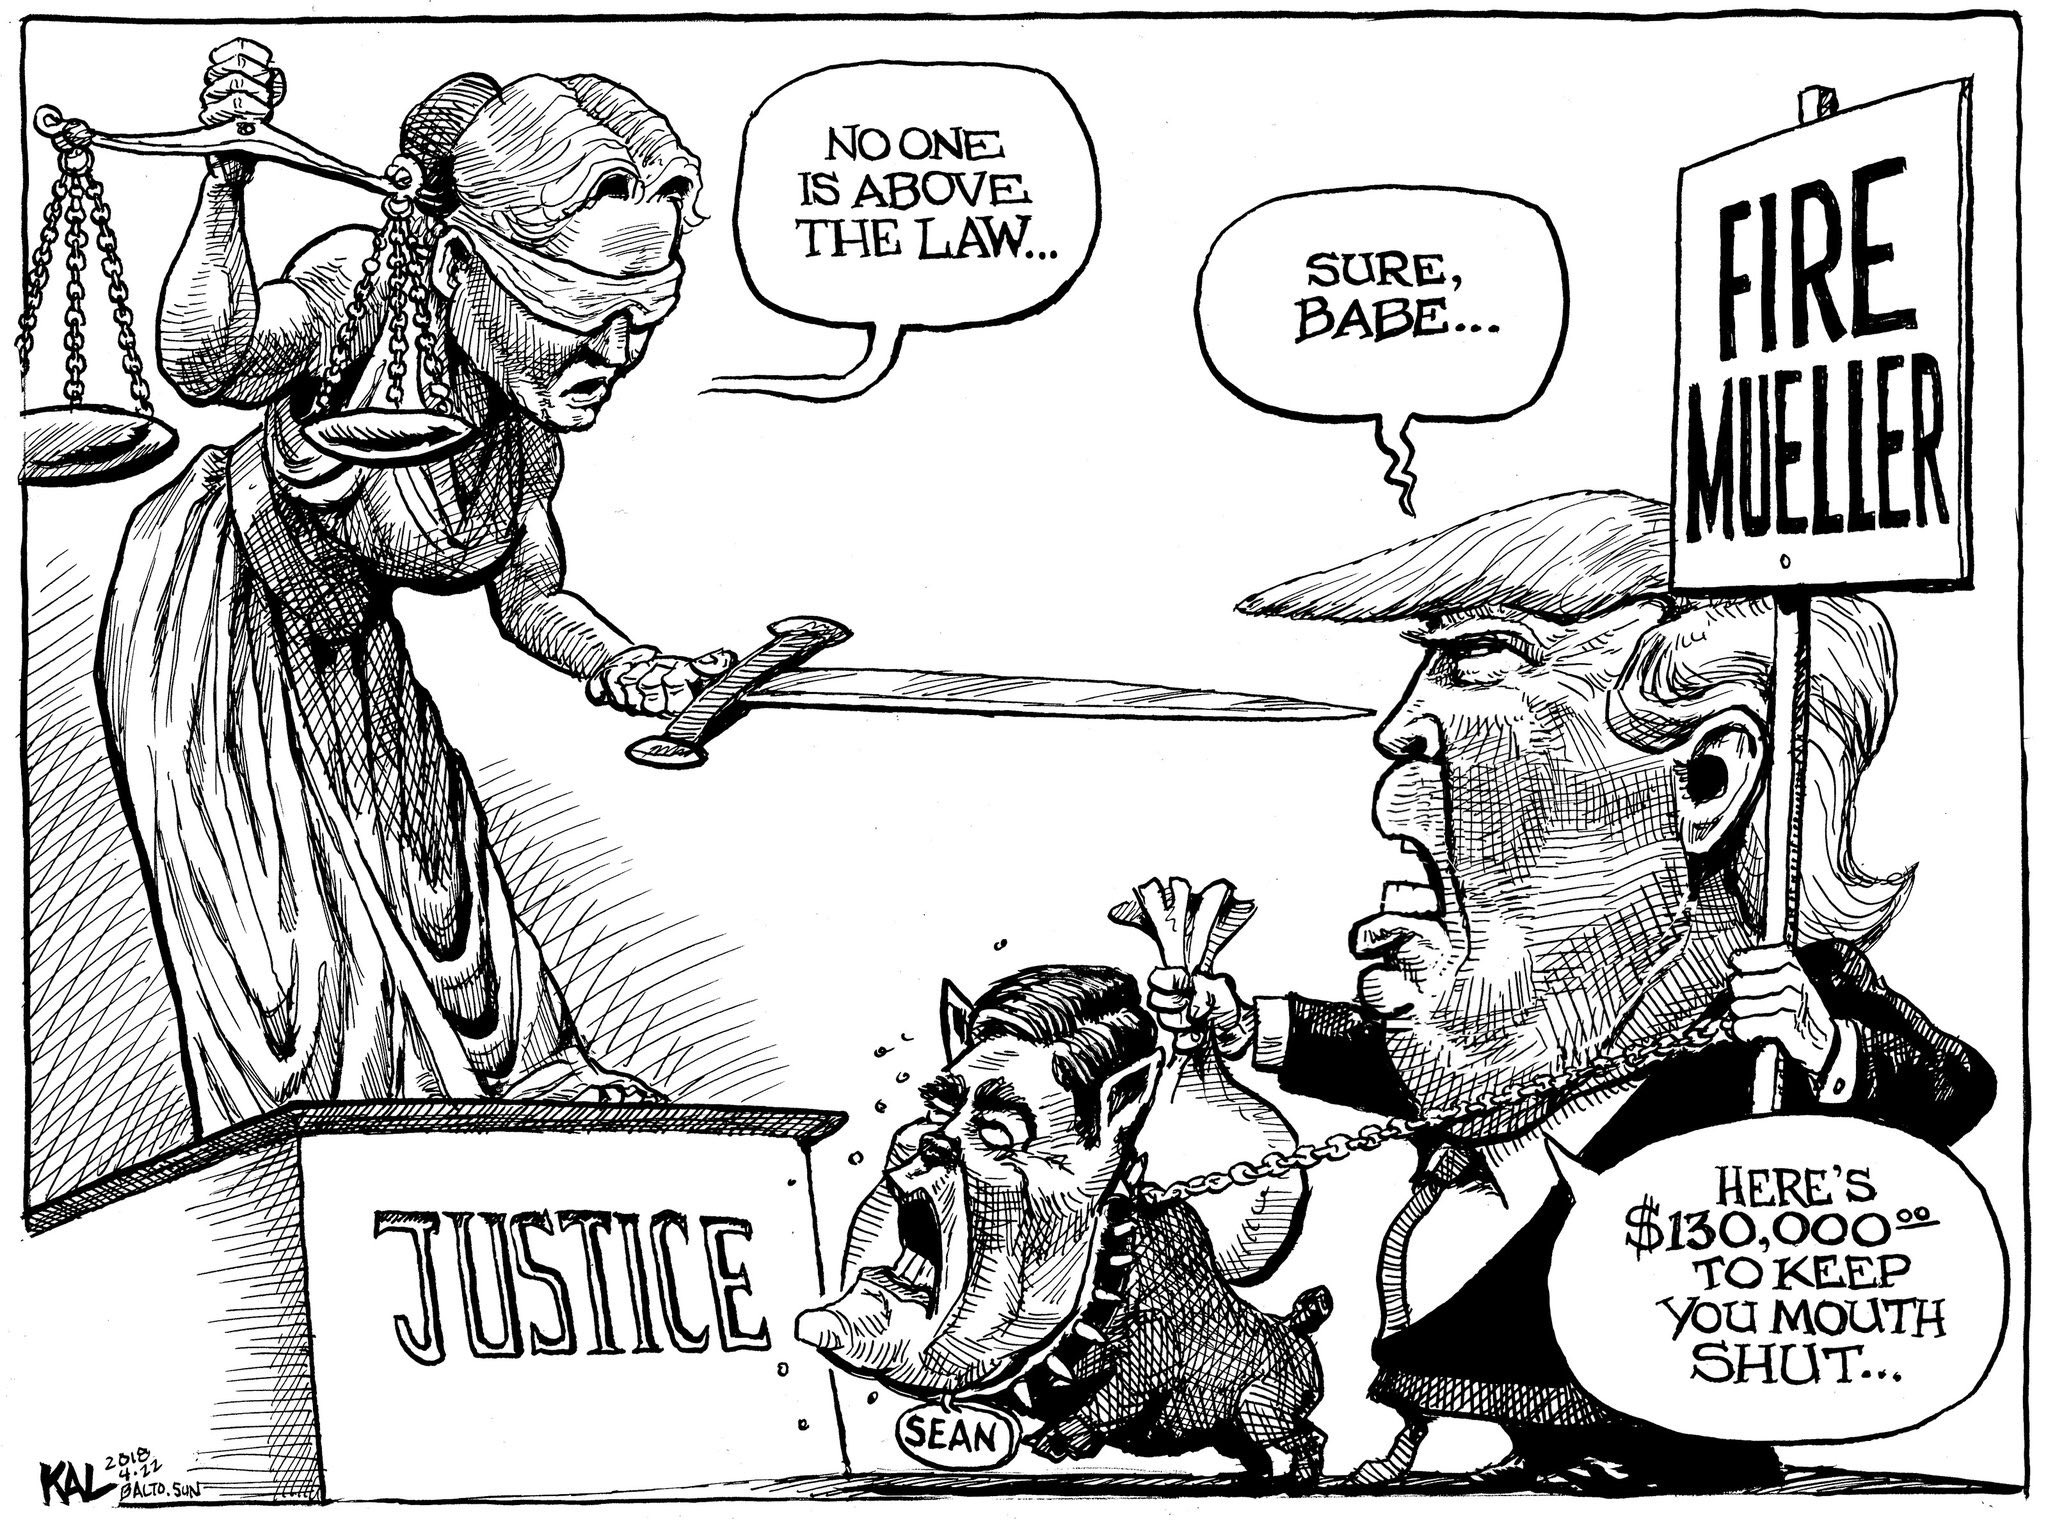 Kal on Donald Trump and the Law - political cartoon gallery in Putney https://t.co/jvMtJzLjb6